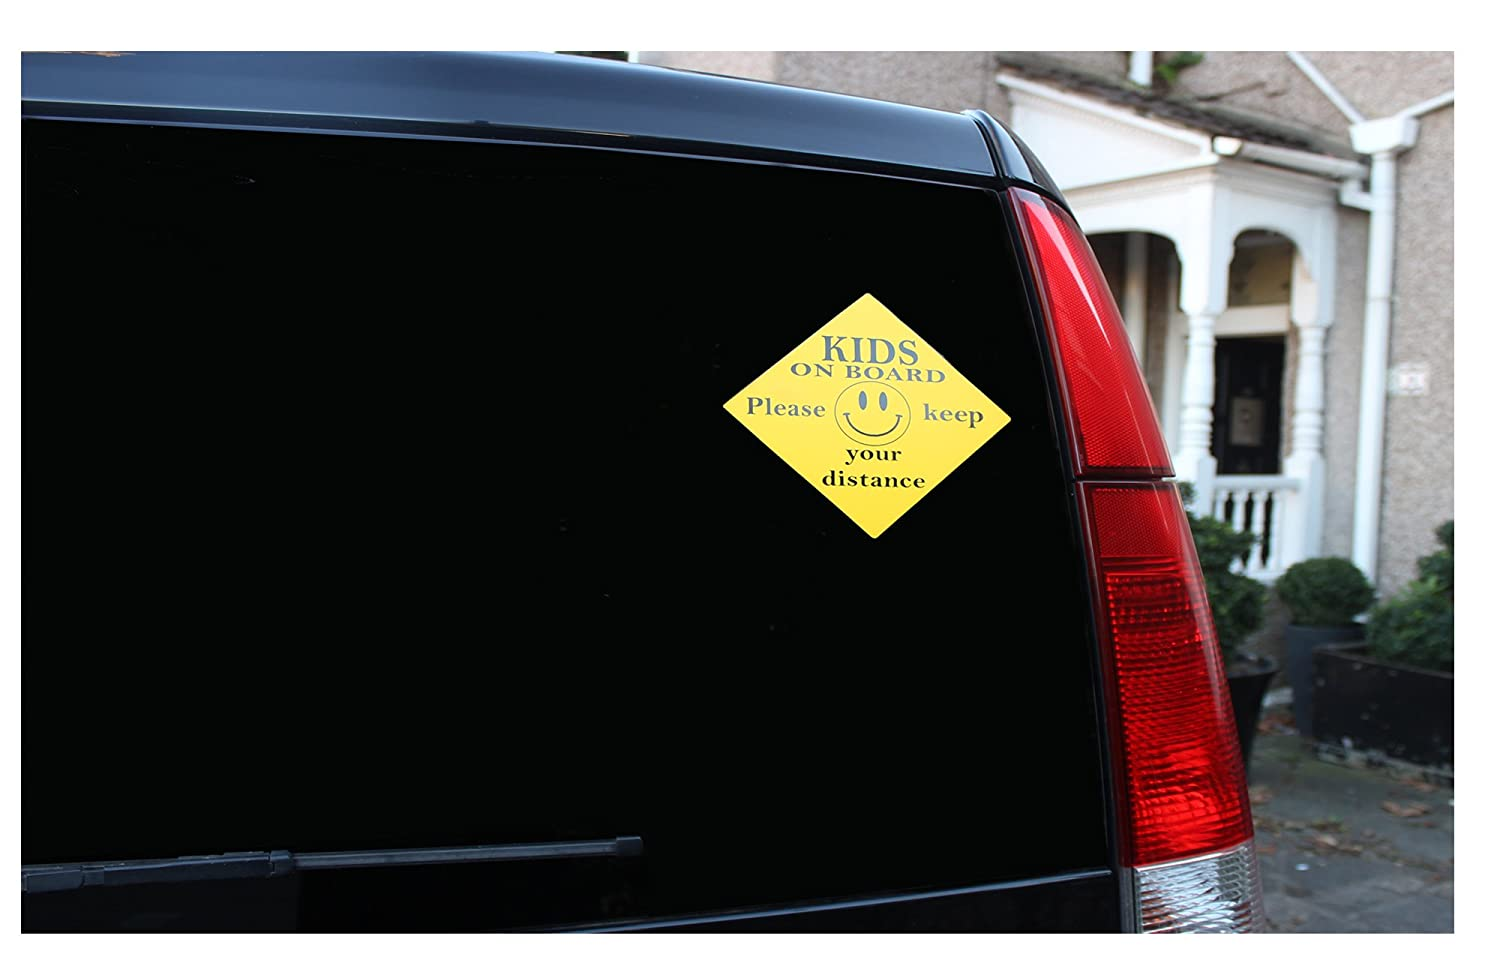 Baby On Board Sign Brown Monkey Baby Sign Bumper Sticker Baby on Board Decal Baby On Board Car Sign Unisex Baby On Board Grandchild On Board Baby Car Signs